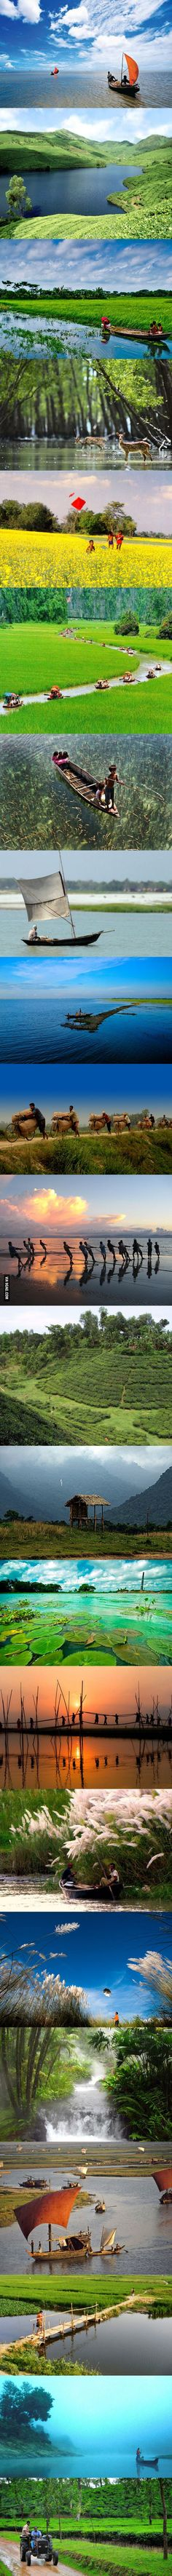 I heard you guys love to travel. Ever thought of visiting Bangladesh.